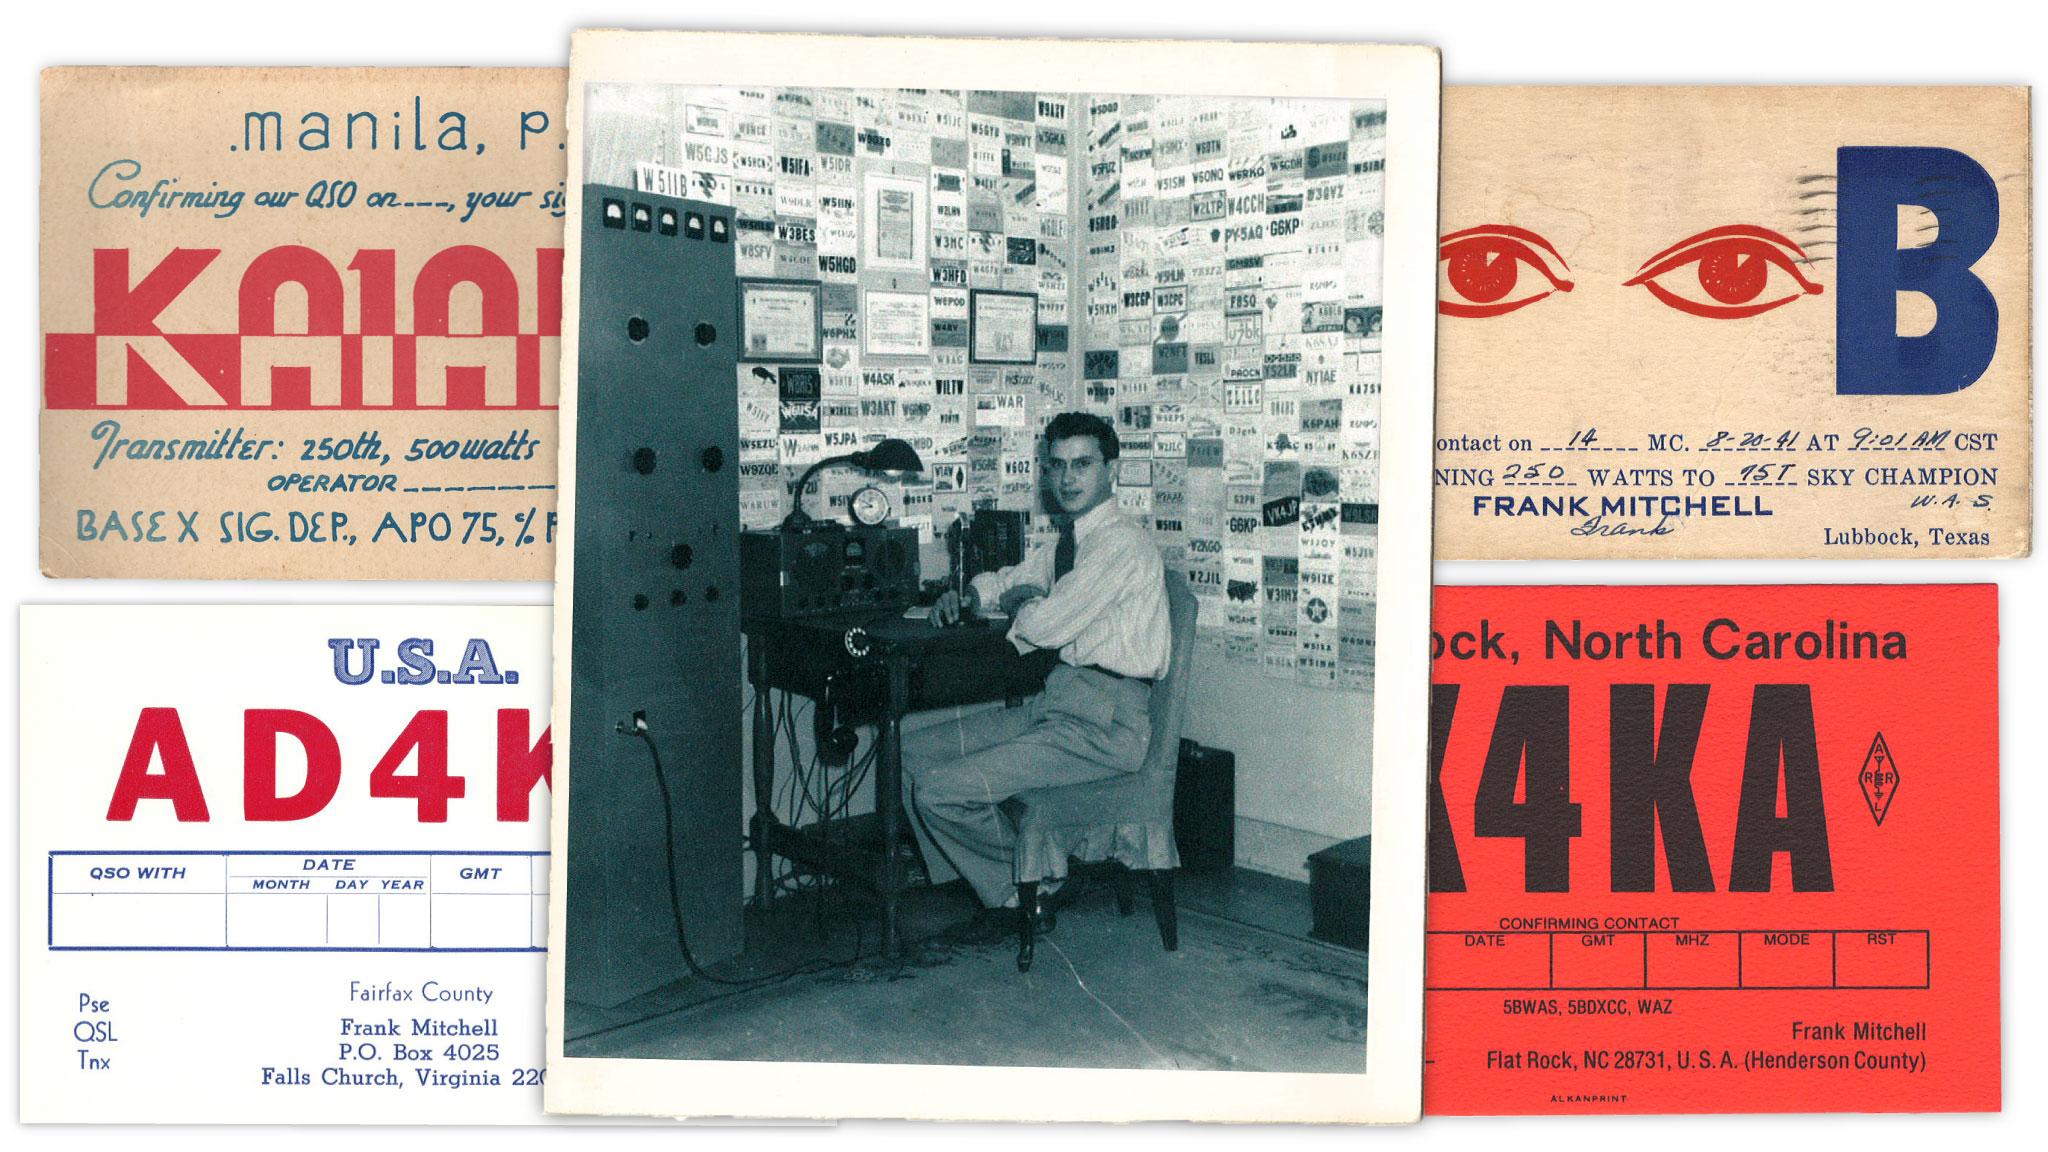 Frank Mitchell at his amateur radio surrounded by QSL cards